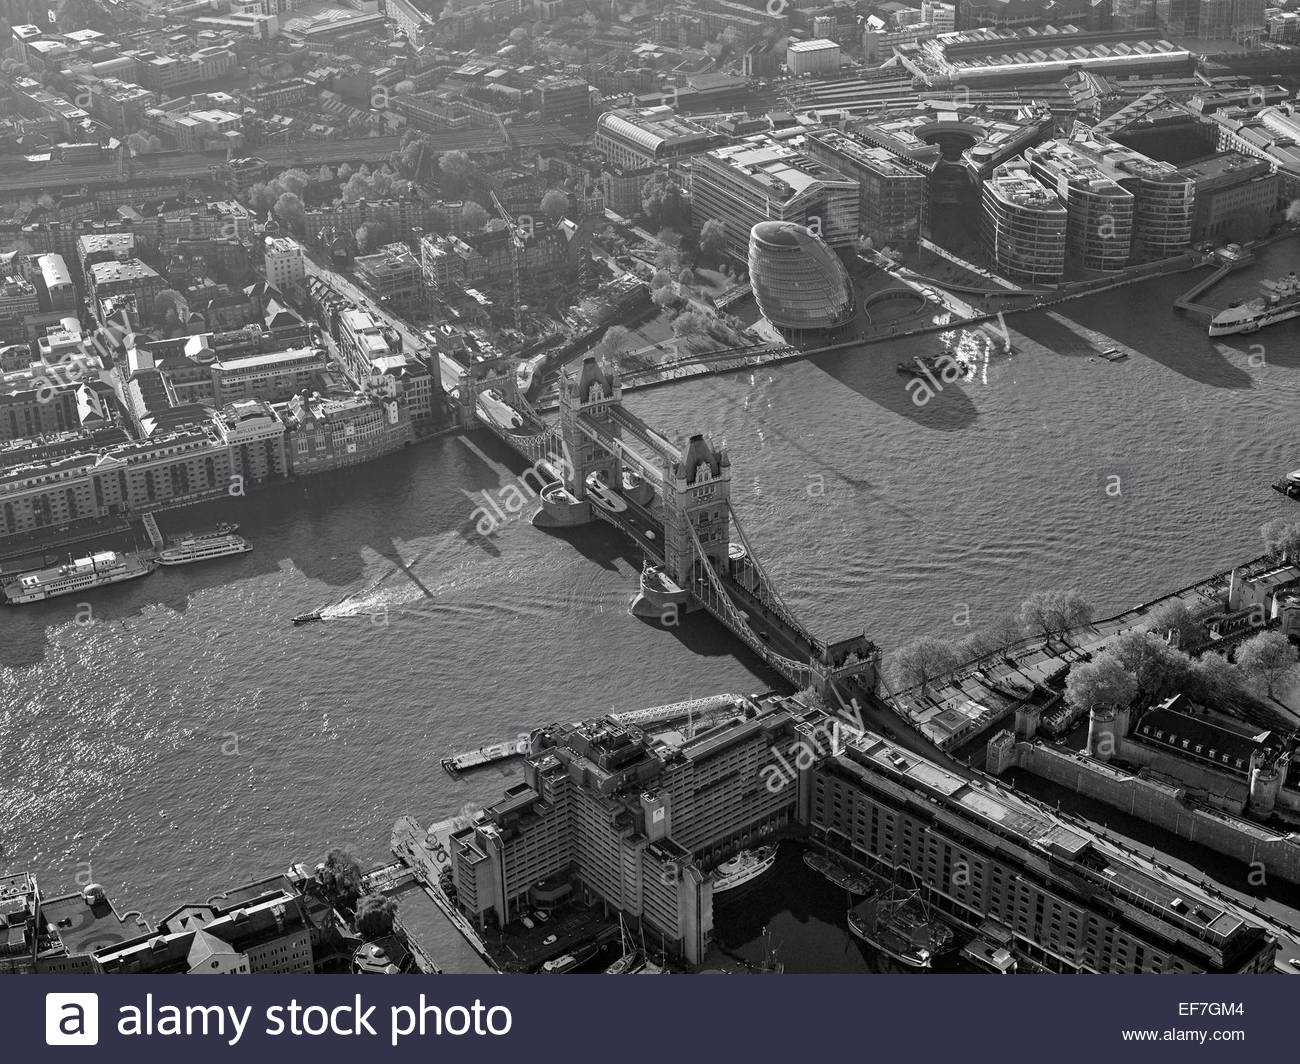 Tower Bridge, and the river Thames, Central London, UK - Stock Image